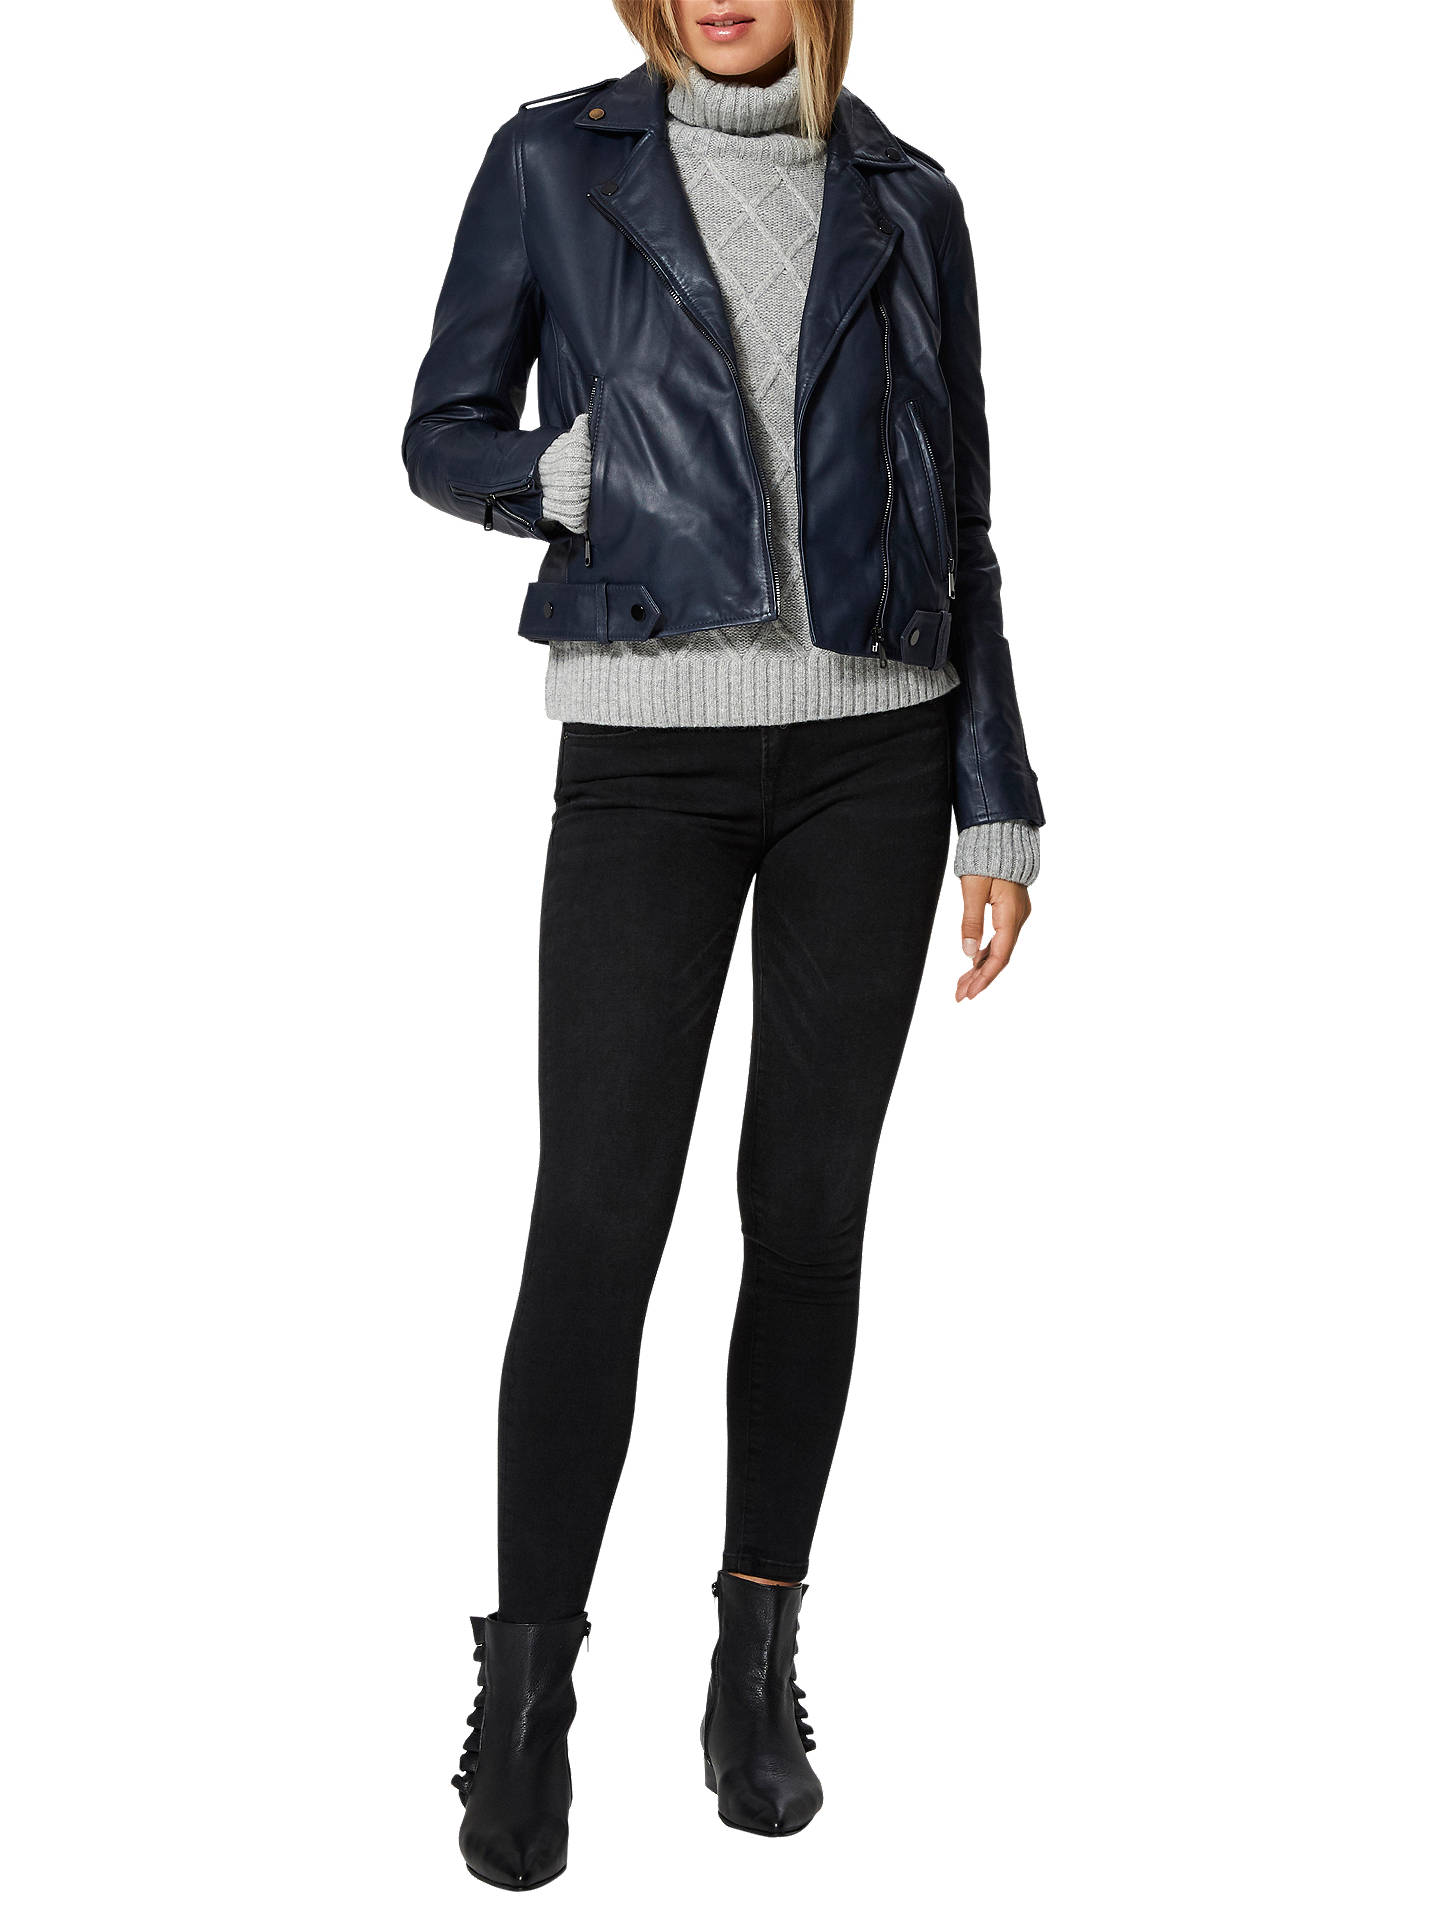 BuySelected Femme Holly Leather Biker Jacket, Dark Sapphire, 8 Online at johnlewis.com